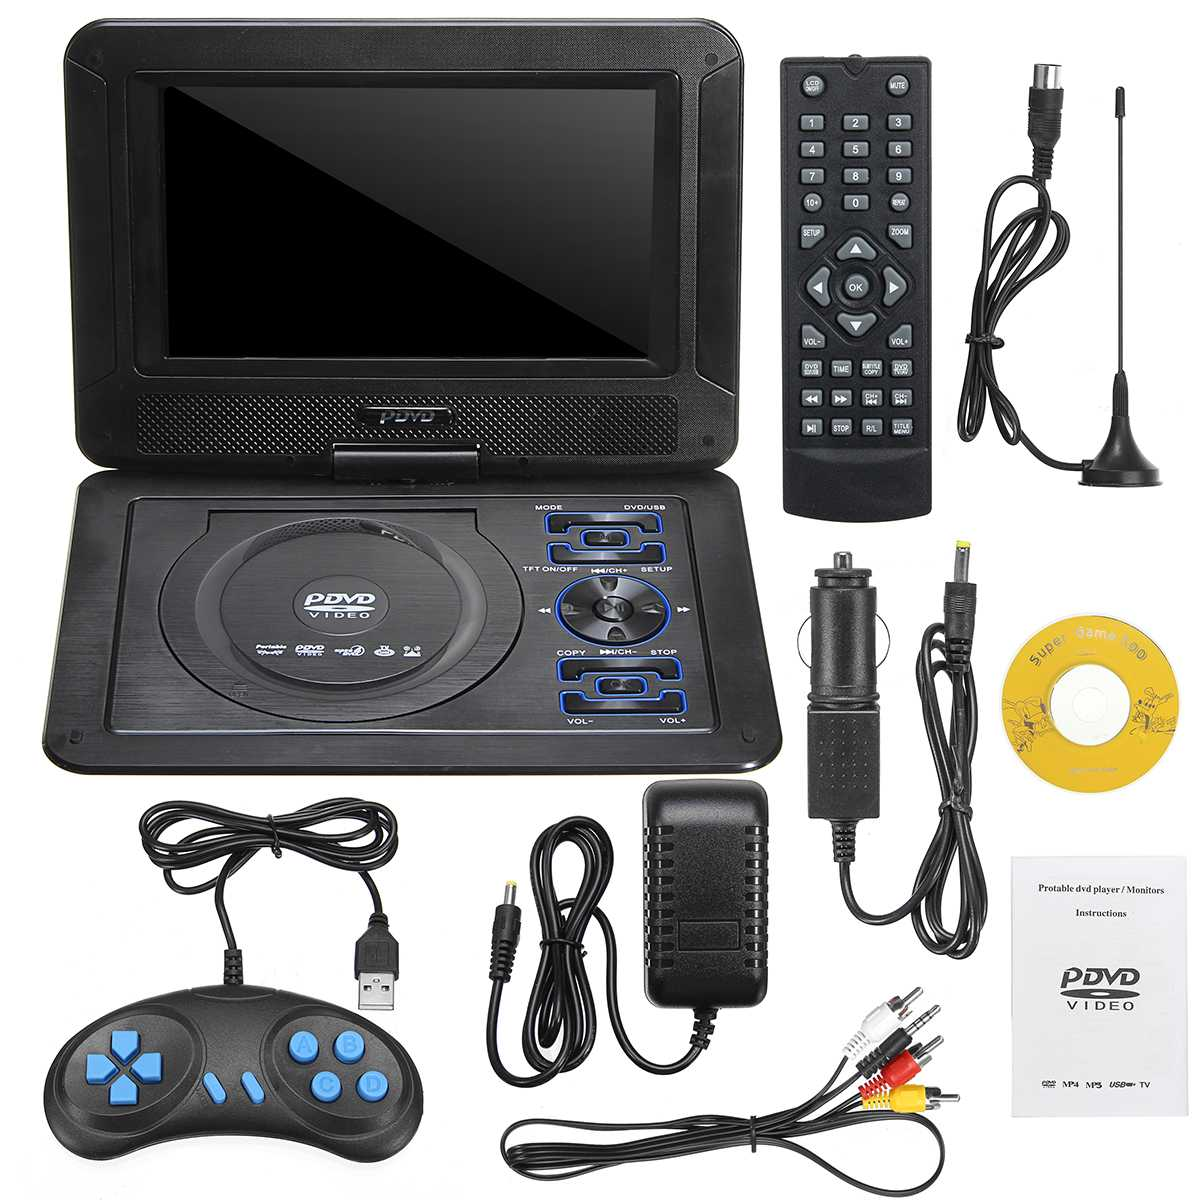 9.8'' Portable Car Home DVD CD Player Screen W/Game Remote Control 300 Games with Joysticks 3 in 1 Card reader TV Input-in DVD & VCD Player from Consumer Electronics    1